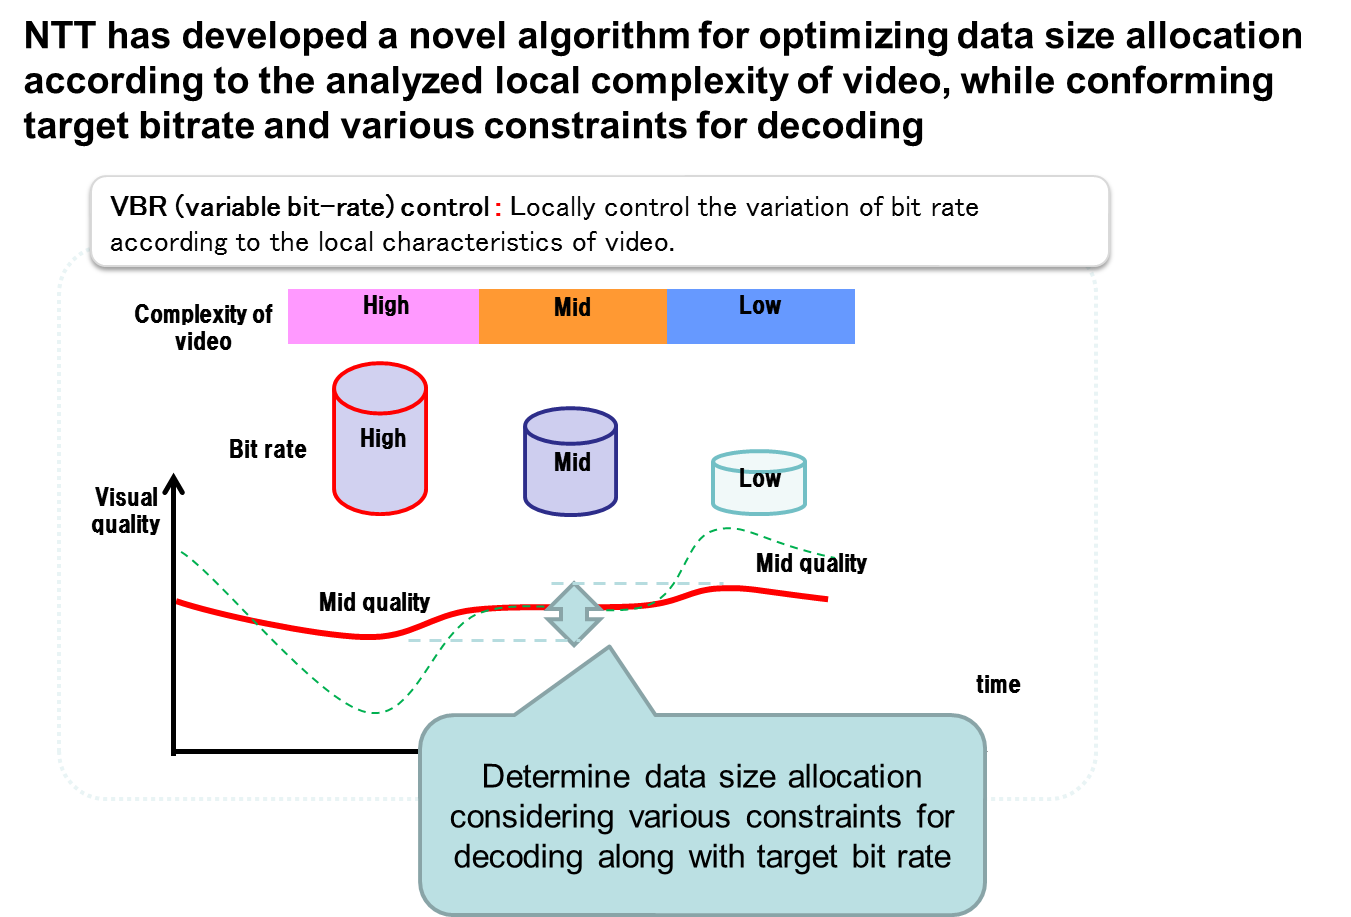 Fig.2 NTT has developed a novel algorithm for optimizing data size allocation according to the analyzed local complexity of video, while conforming target bitrate and various constraints for decoding